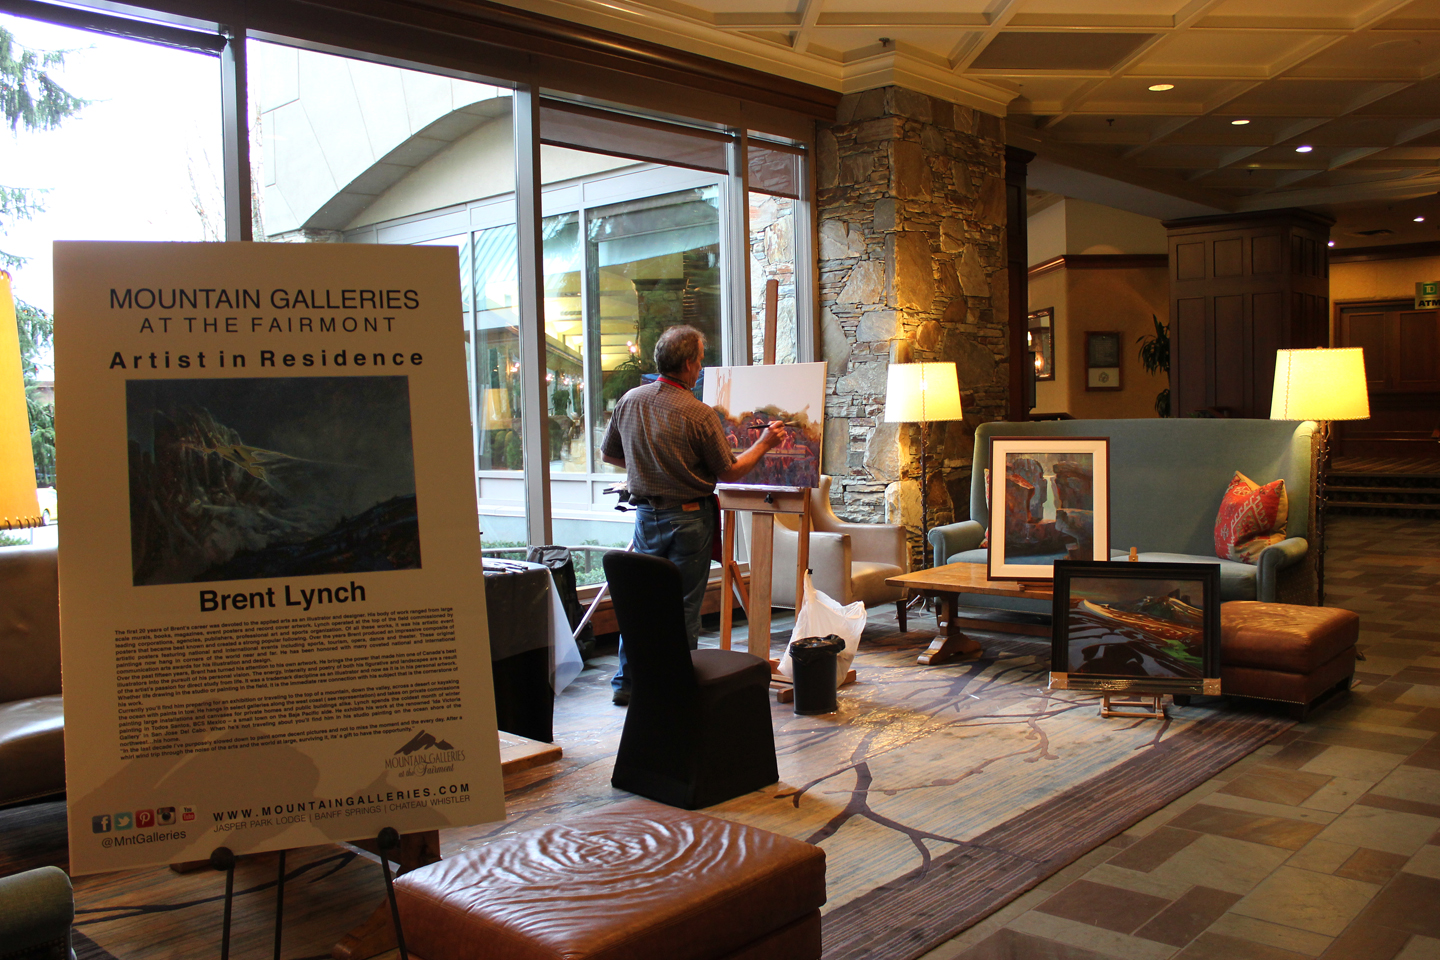 B. Lynch Artist in Residence